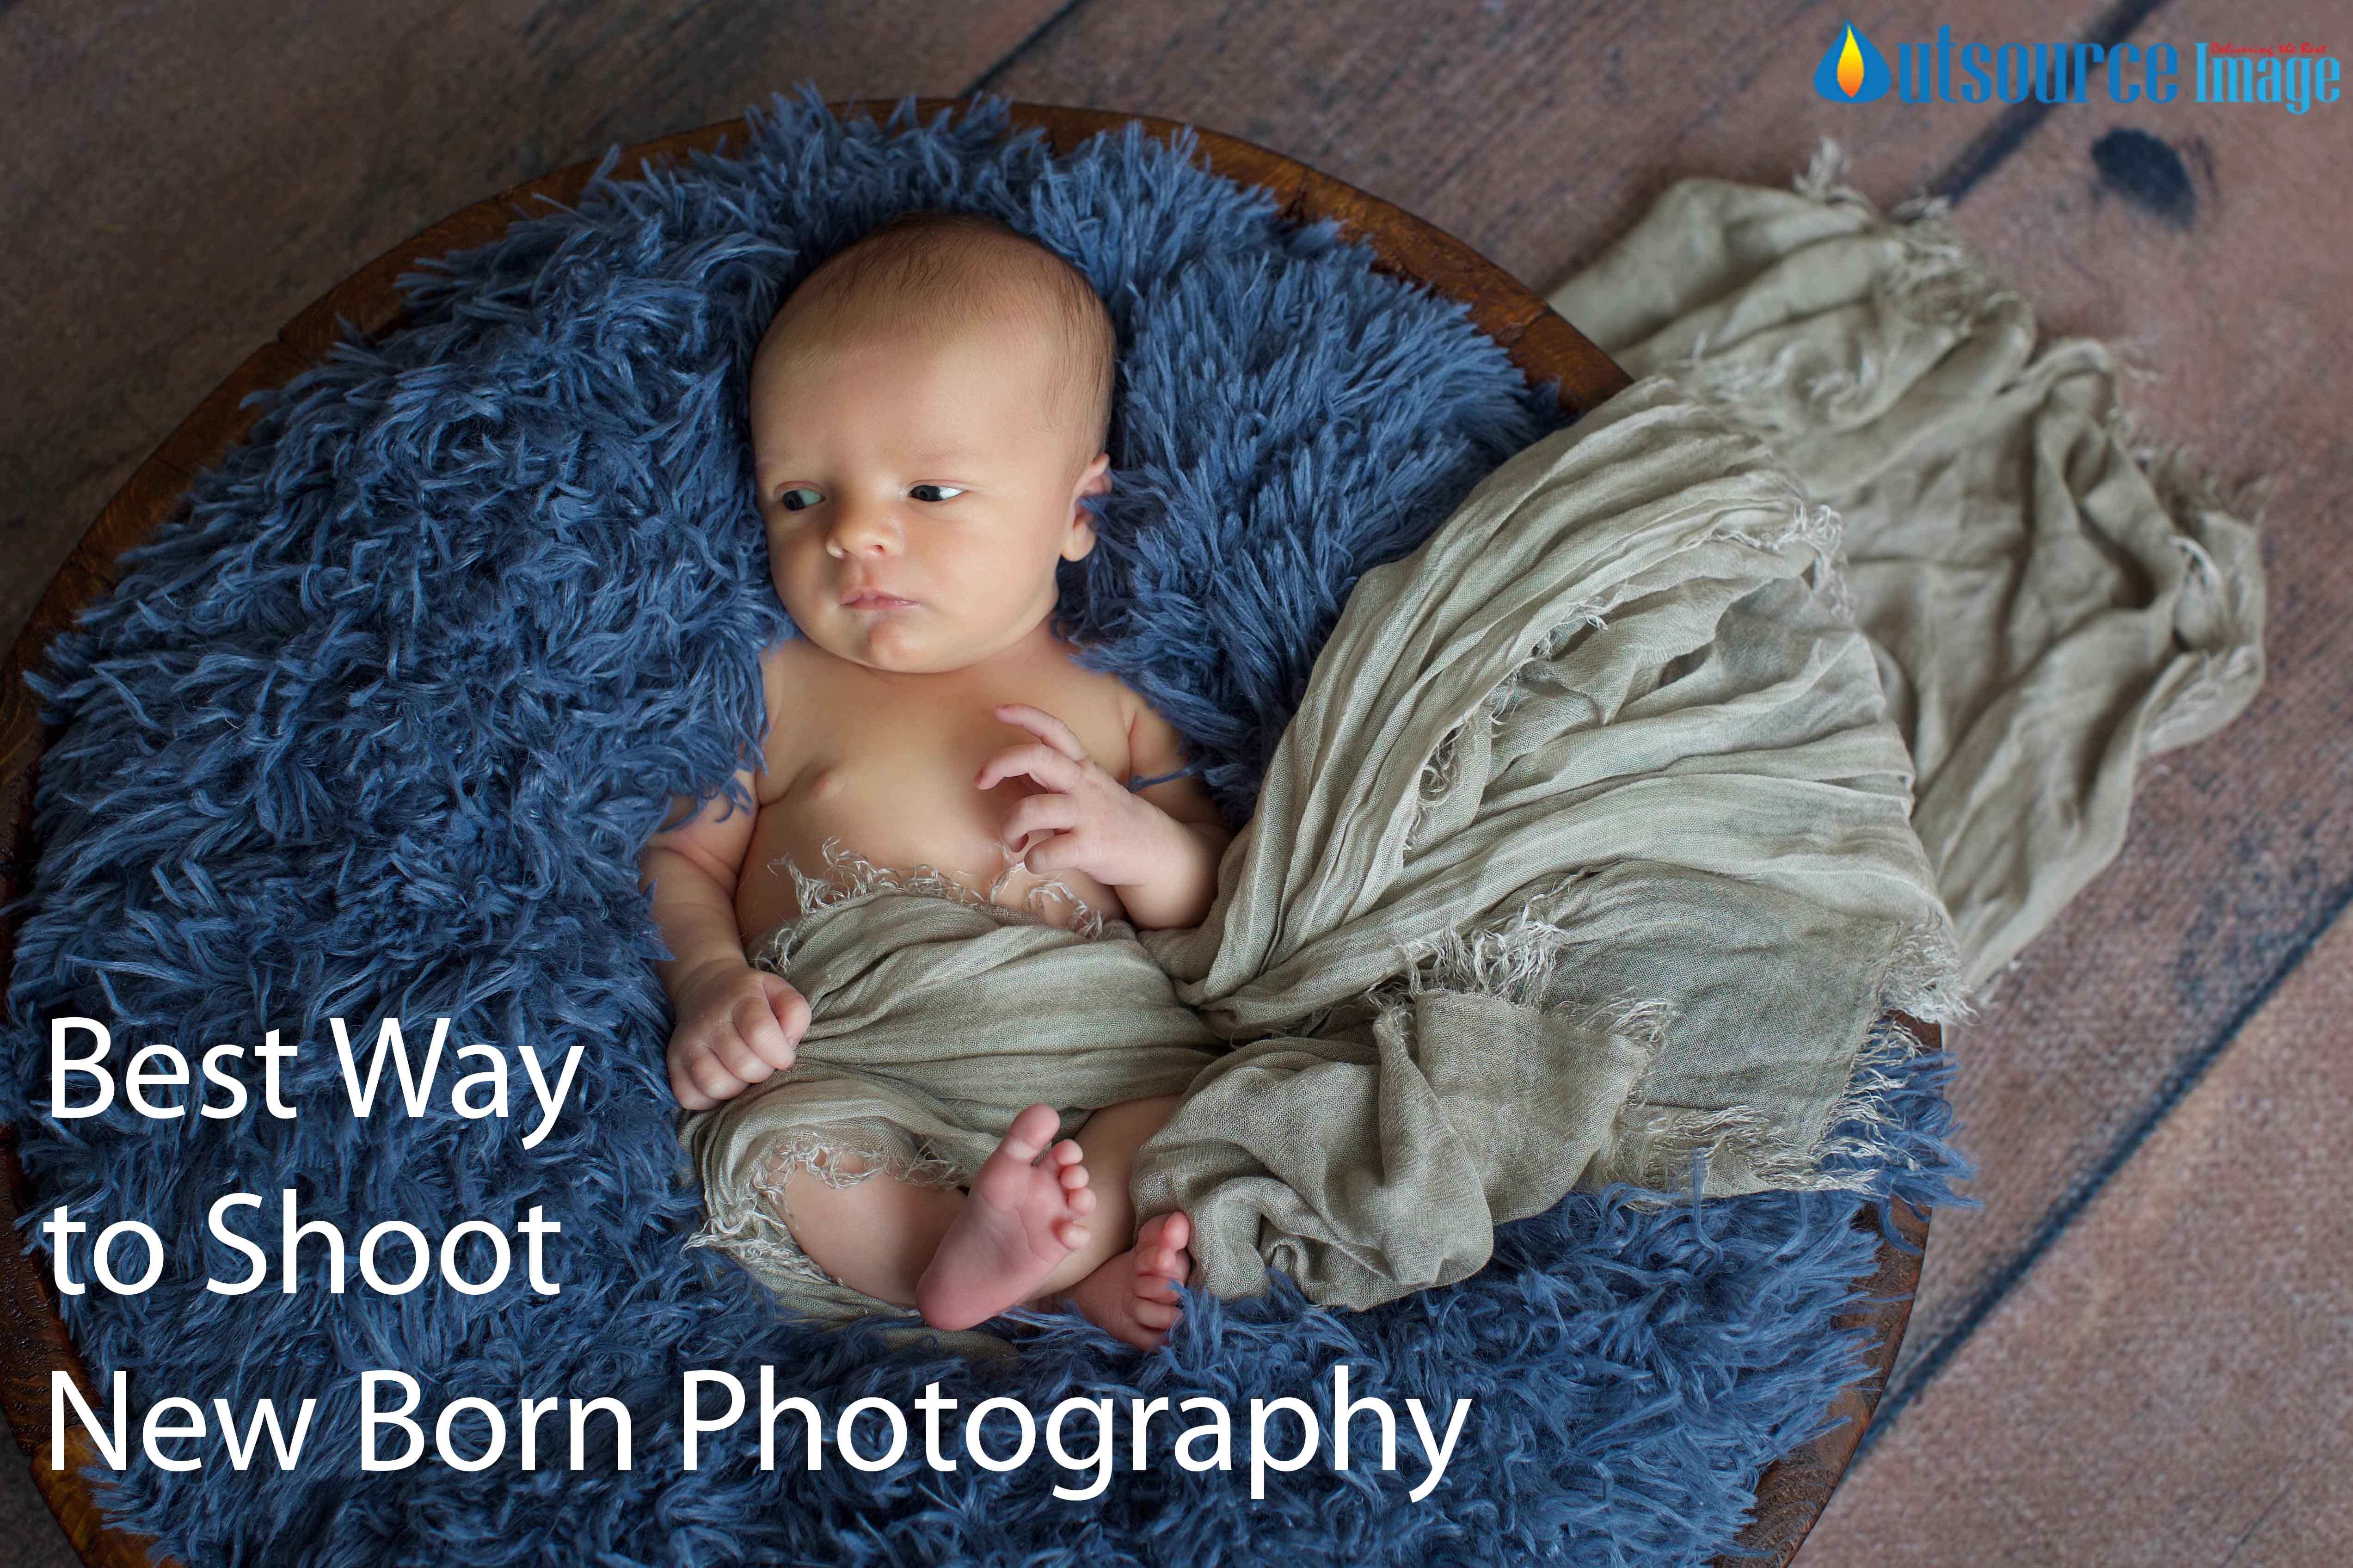 Best way to shoot newborn photography | Newborn Image Editing Services